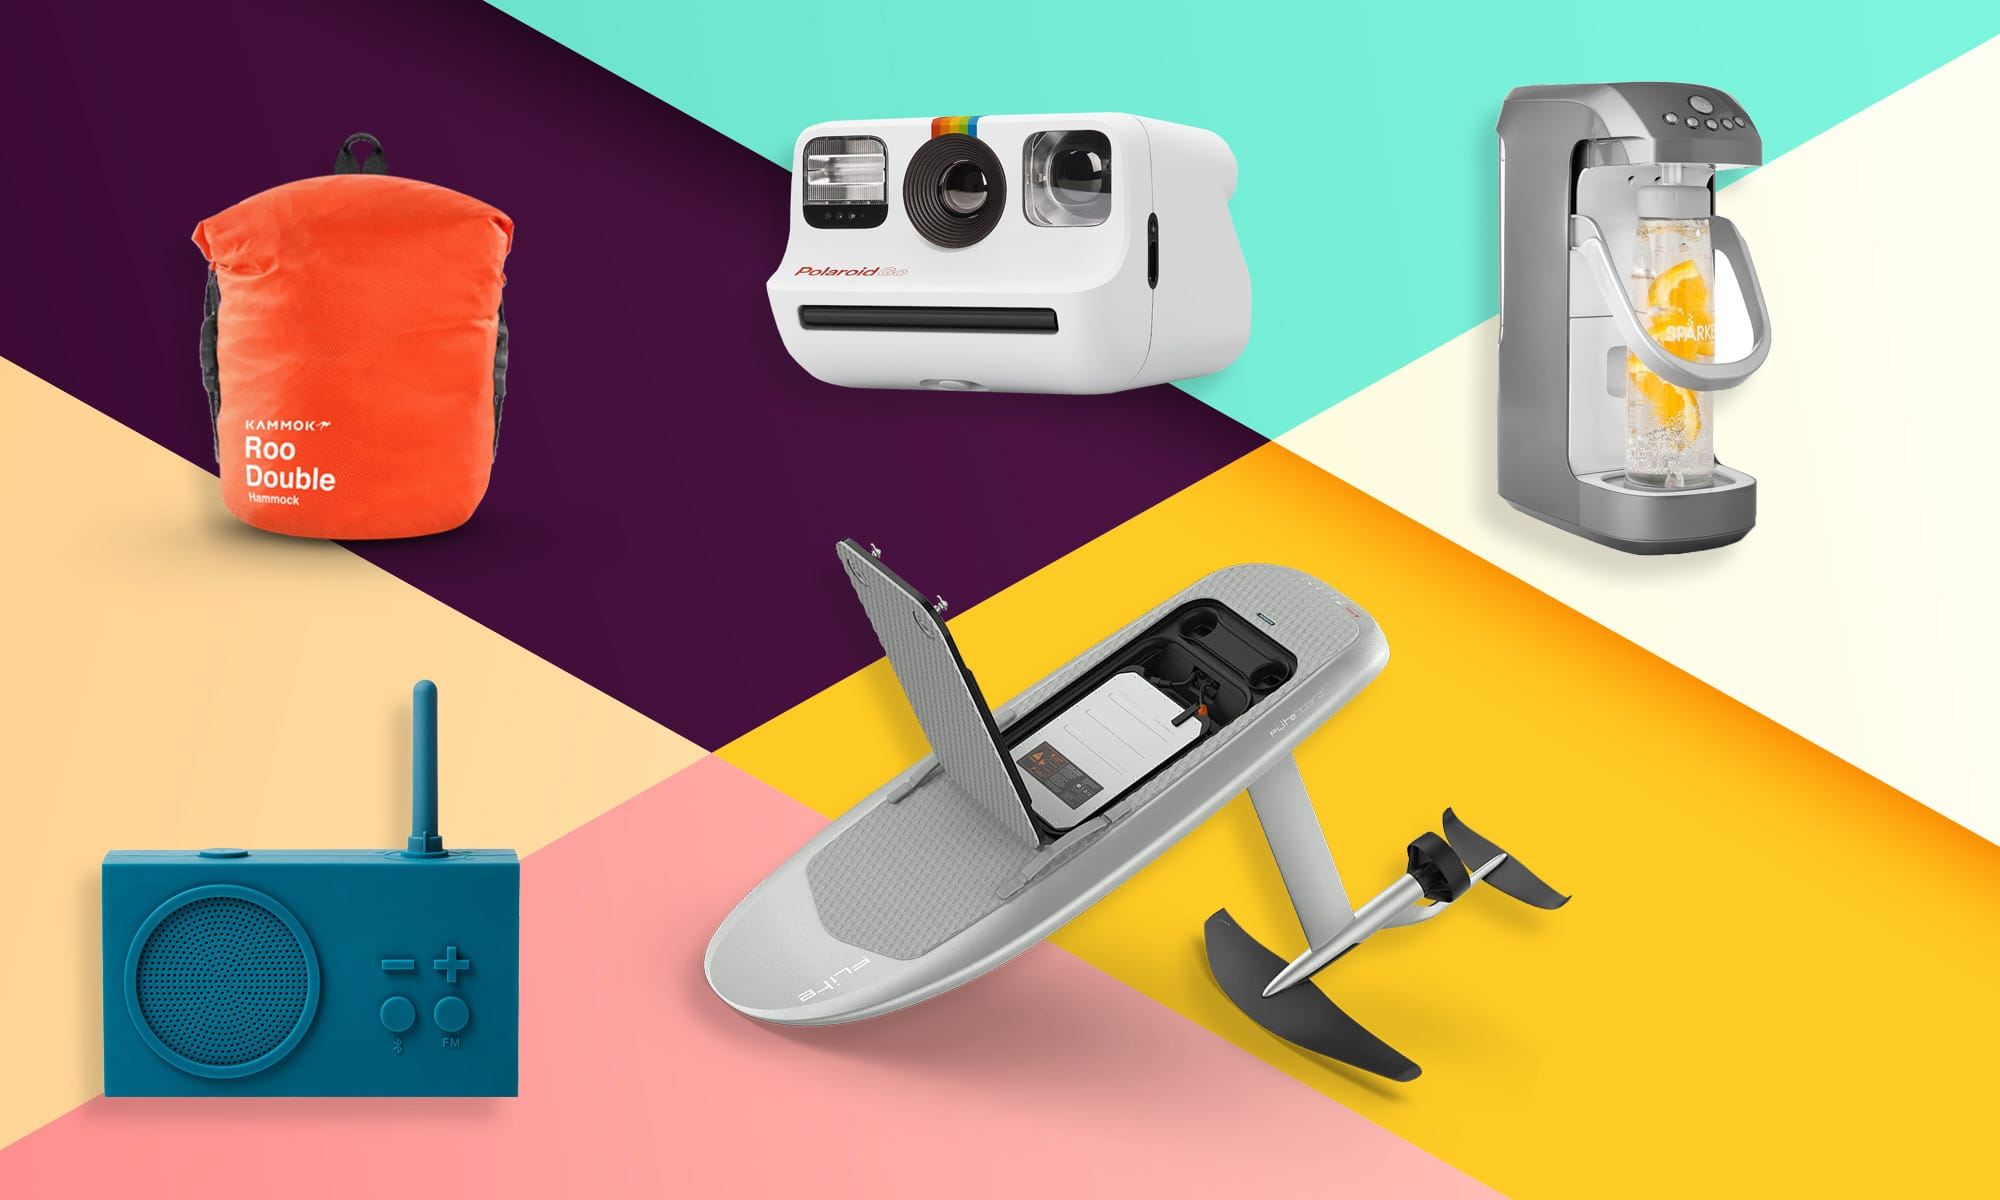 Must-have summer gadgets and accessories for 2021